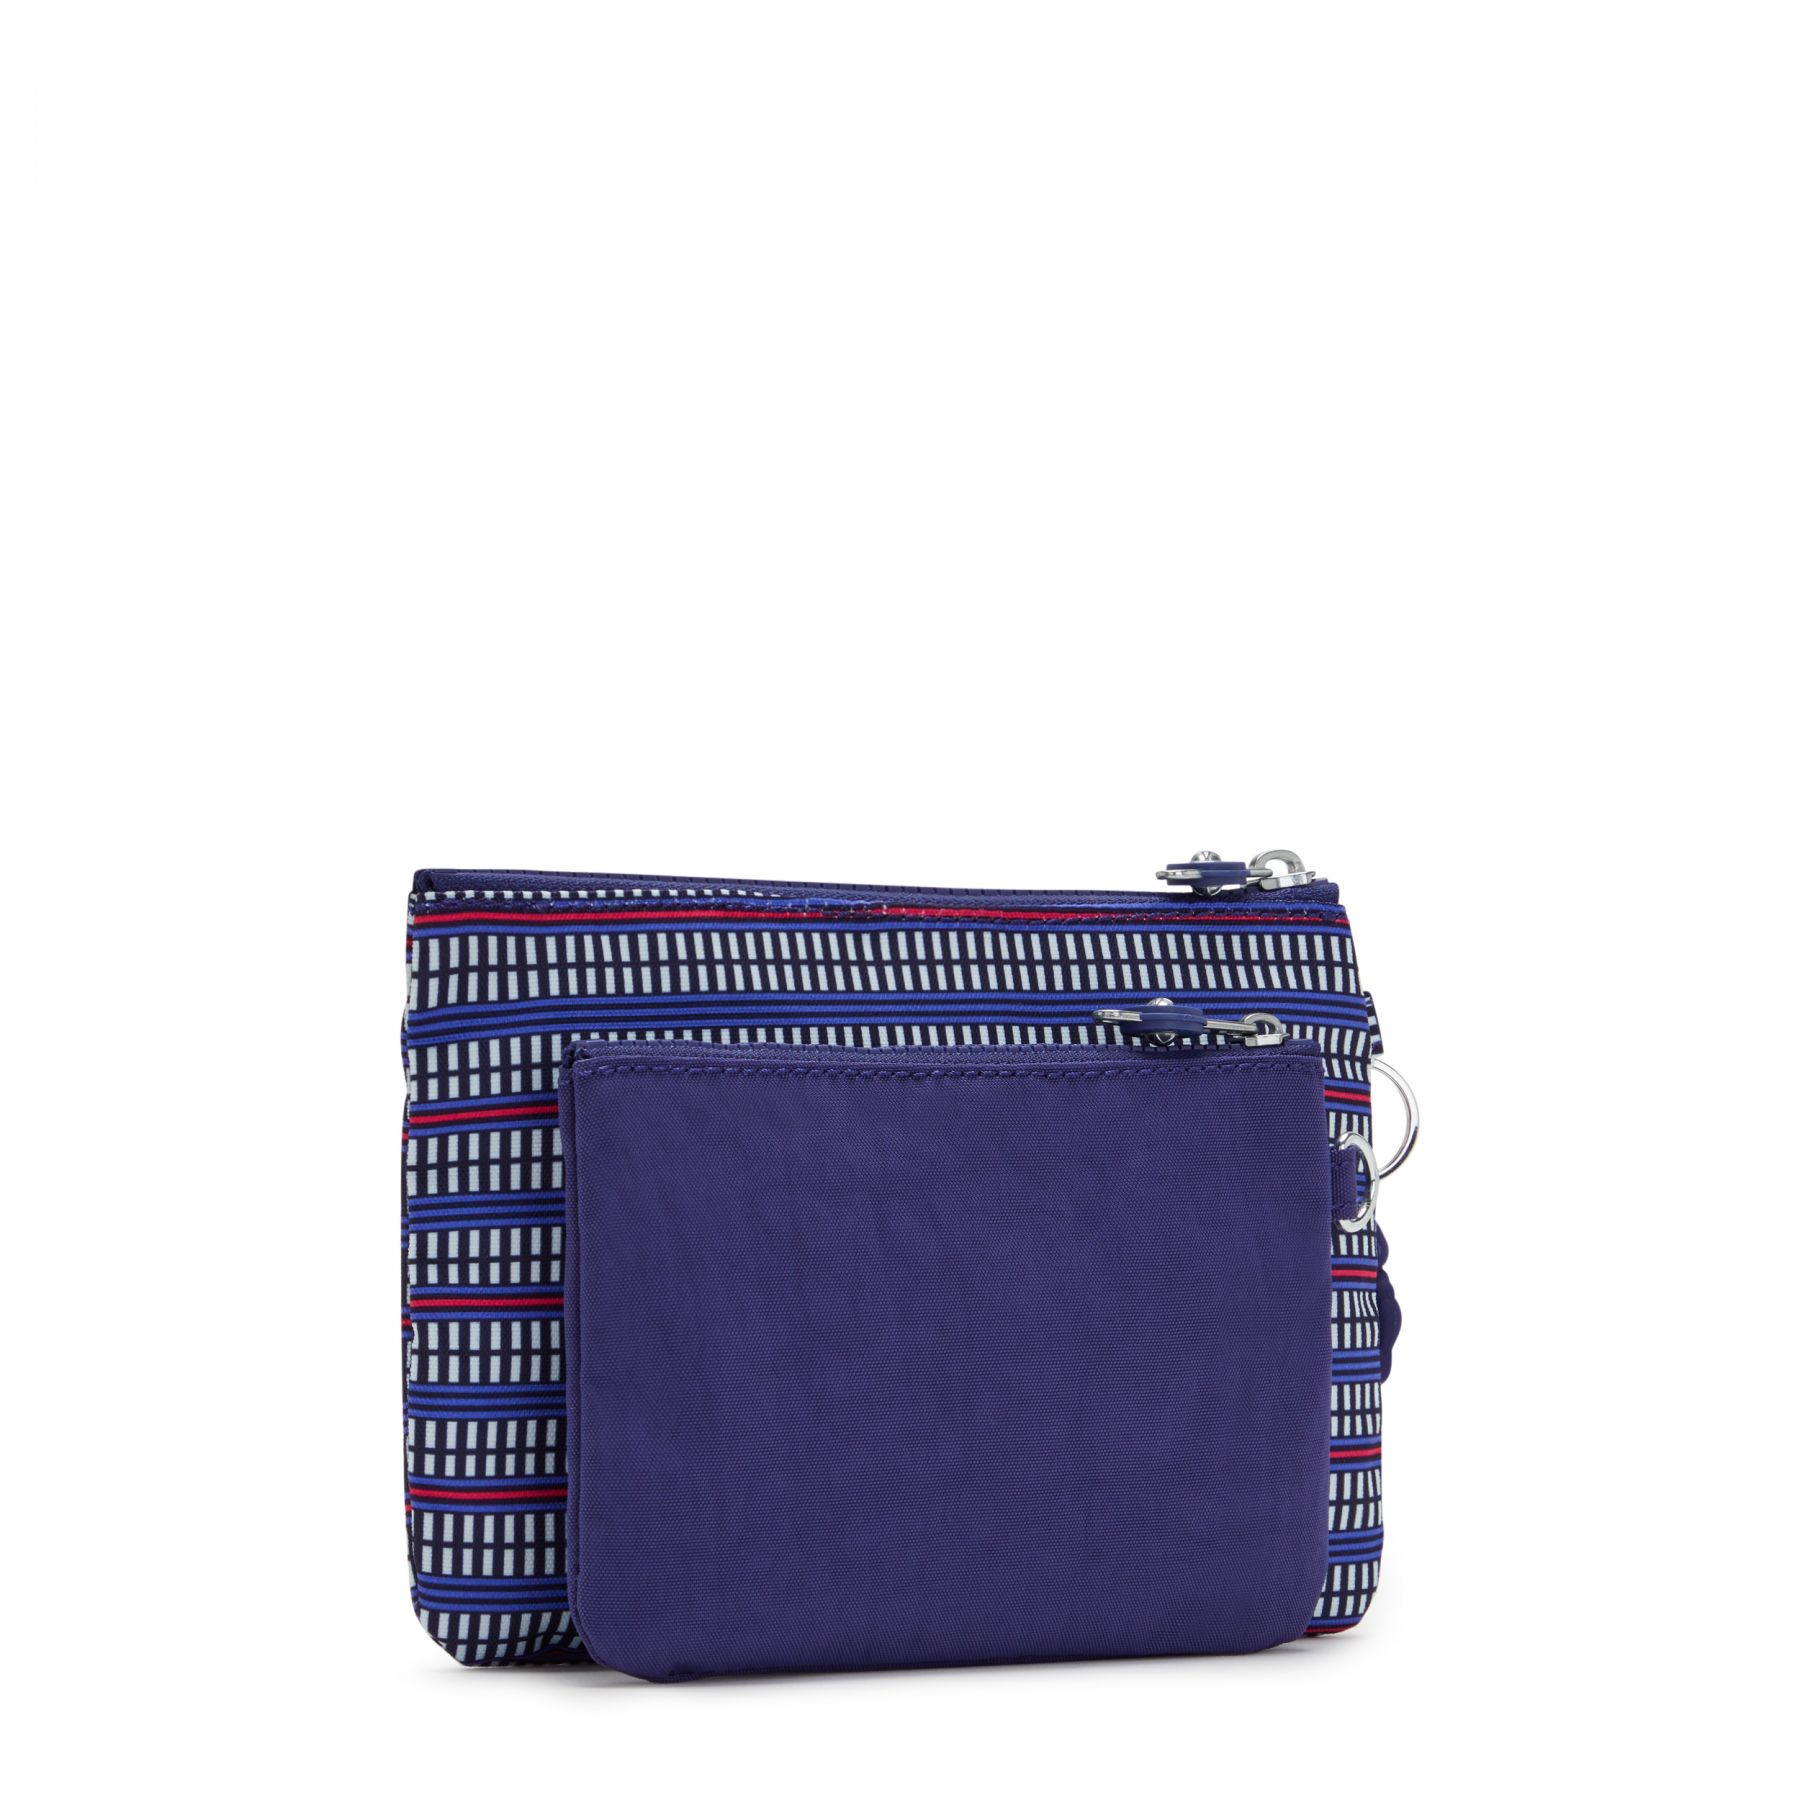 DUO POUCH ACCESSORIES by Kipling - Back view